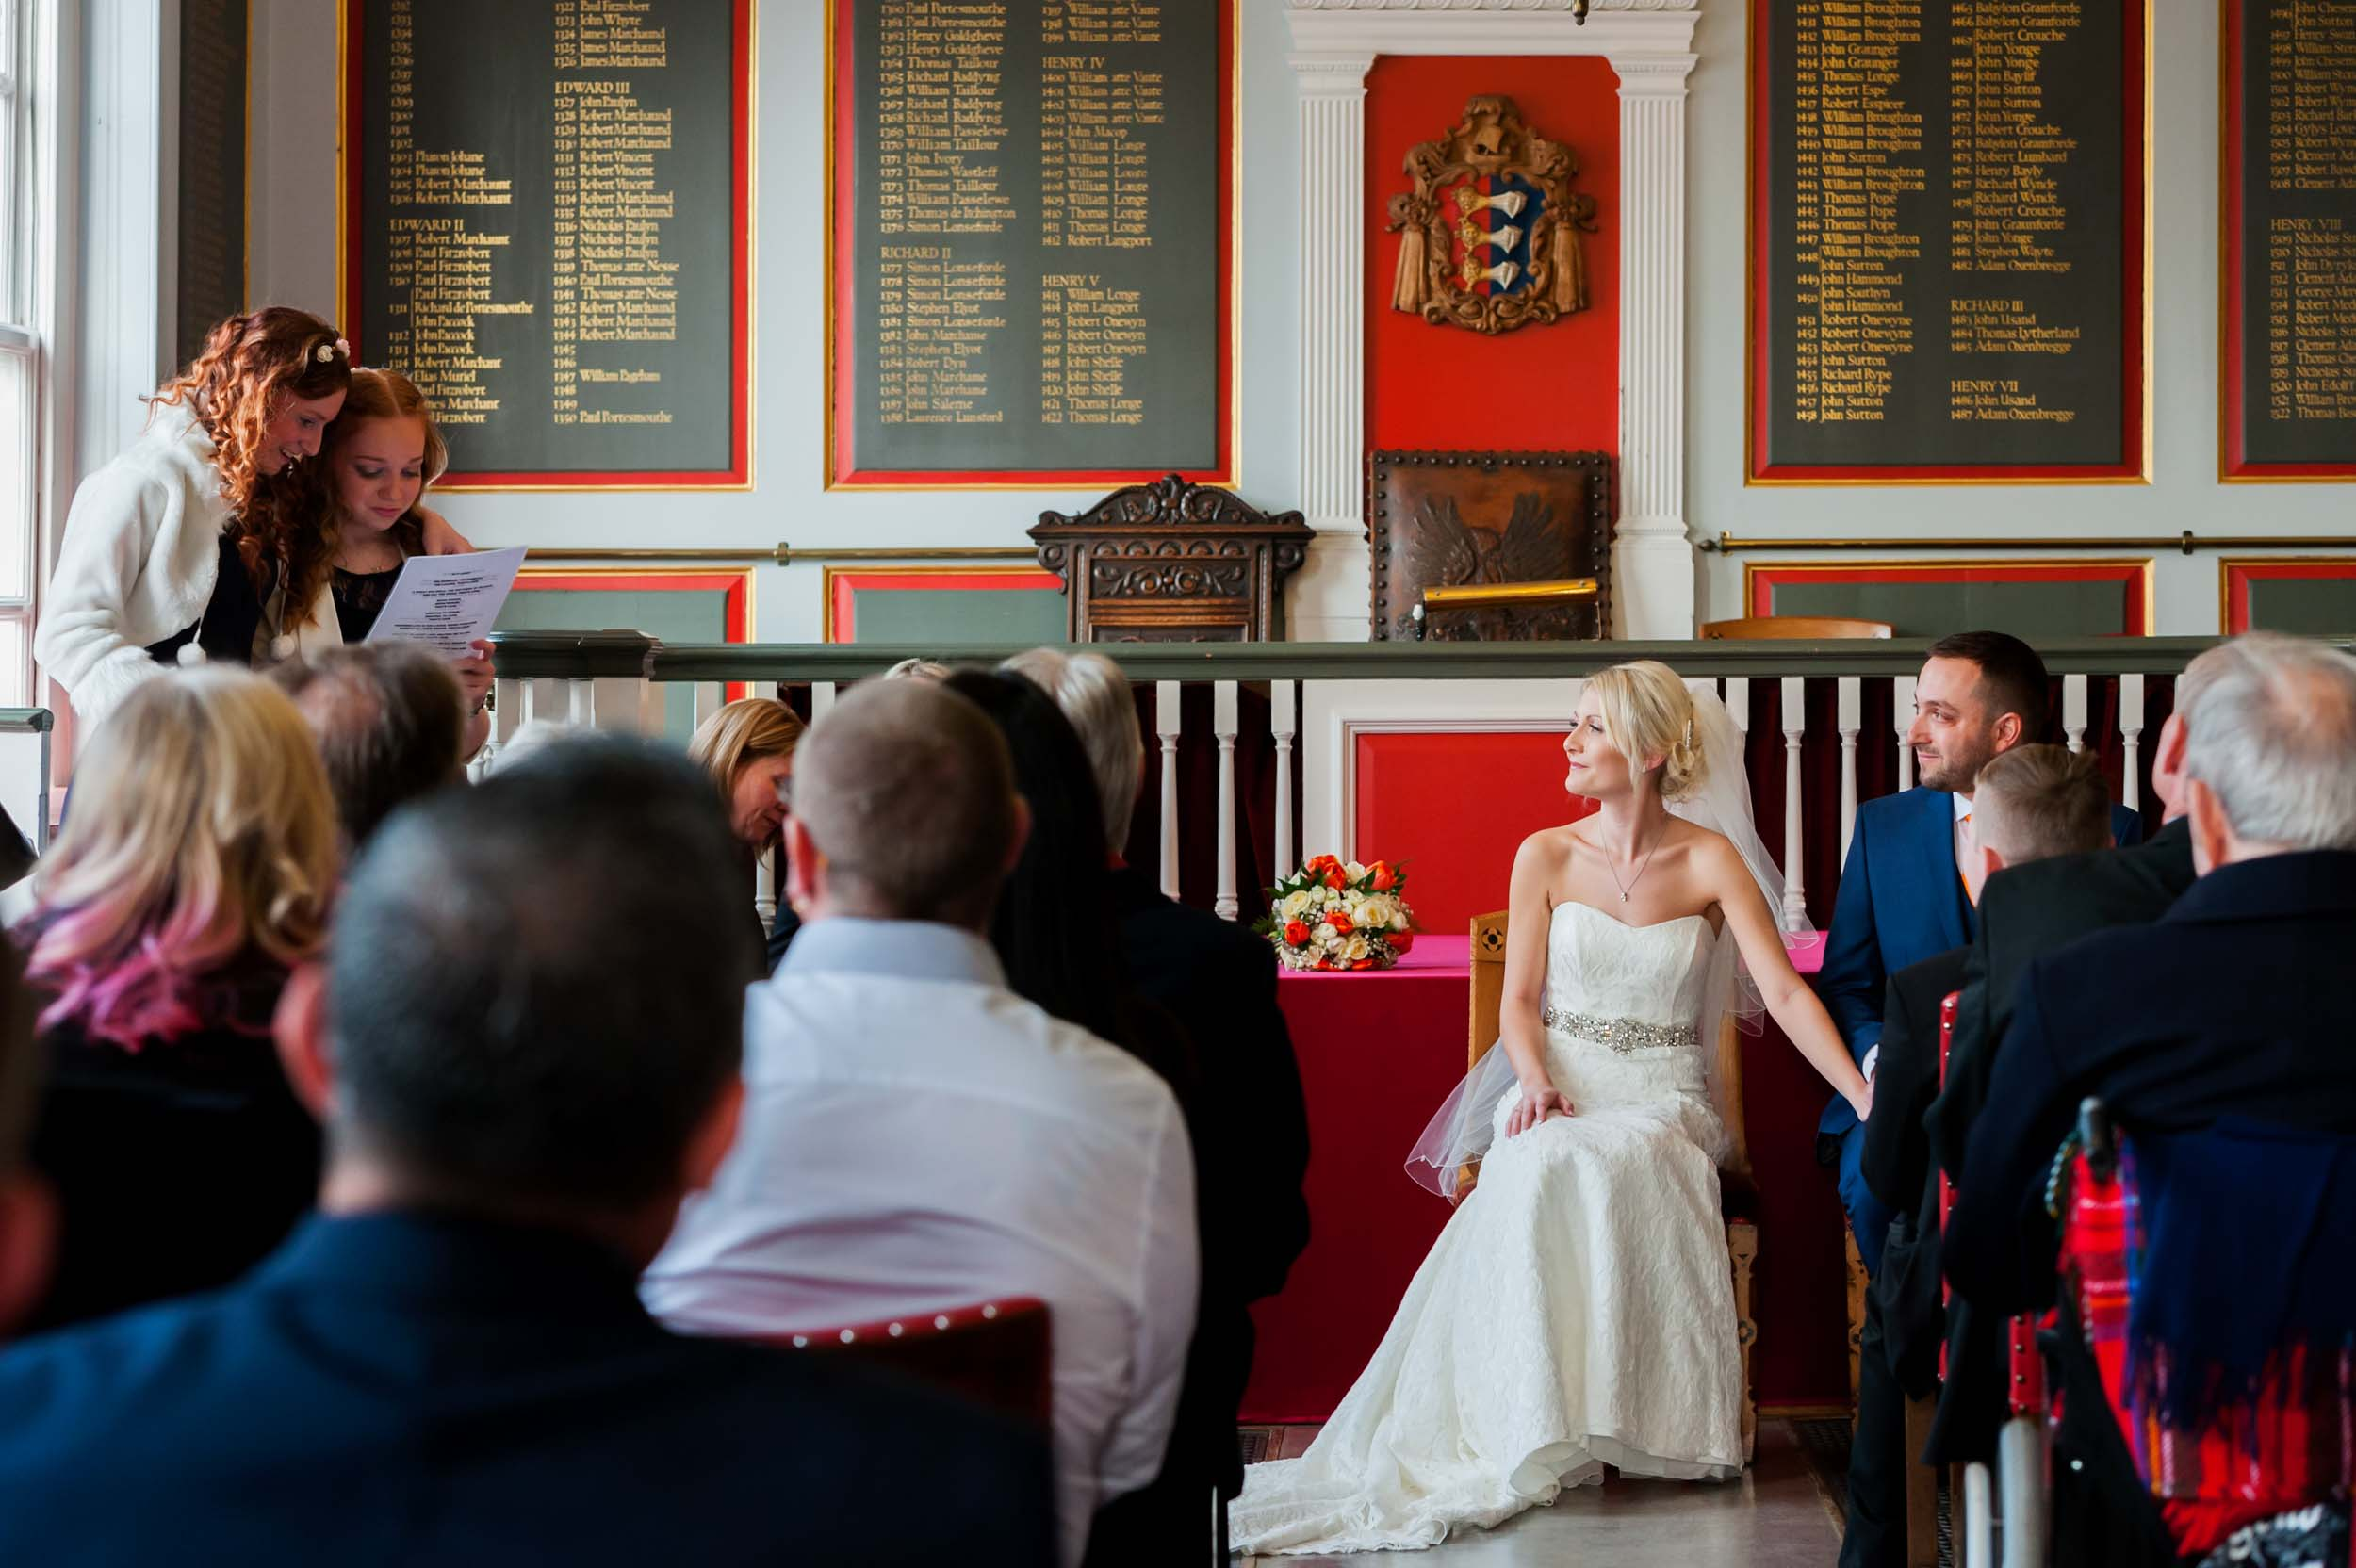 Emotional reading during ceremony by sussex wedding photographer James Robertshaw.